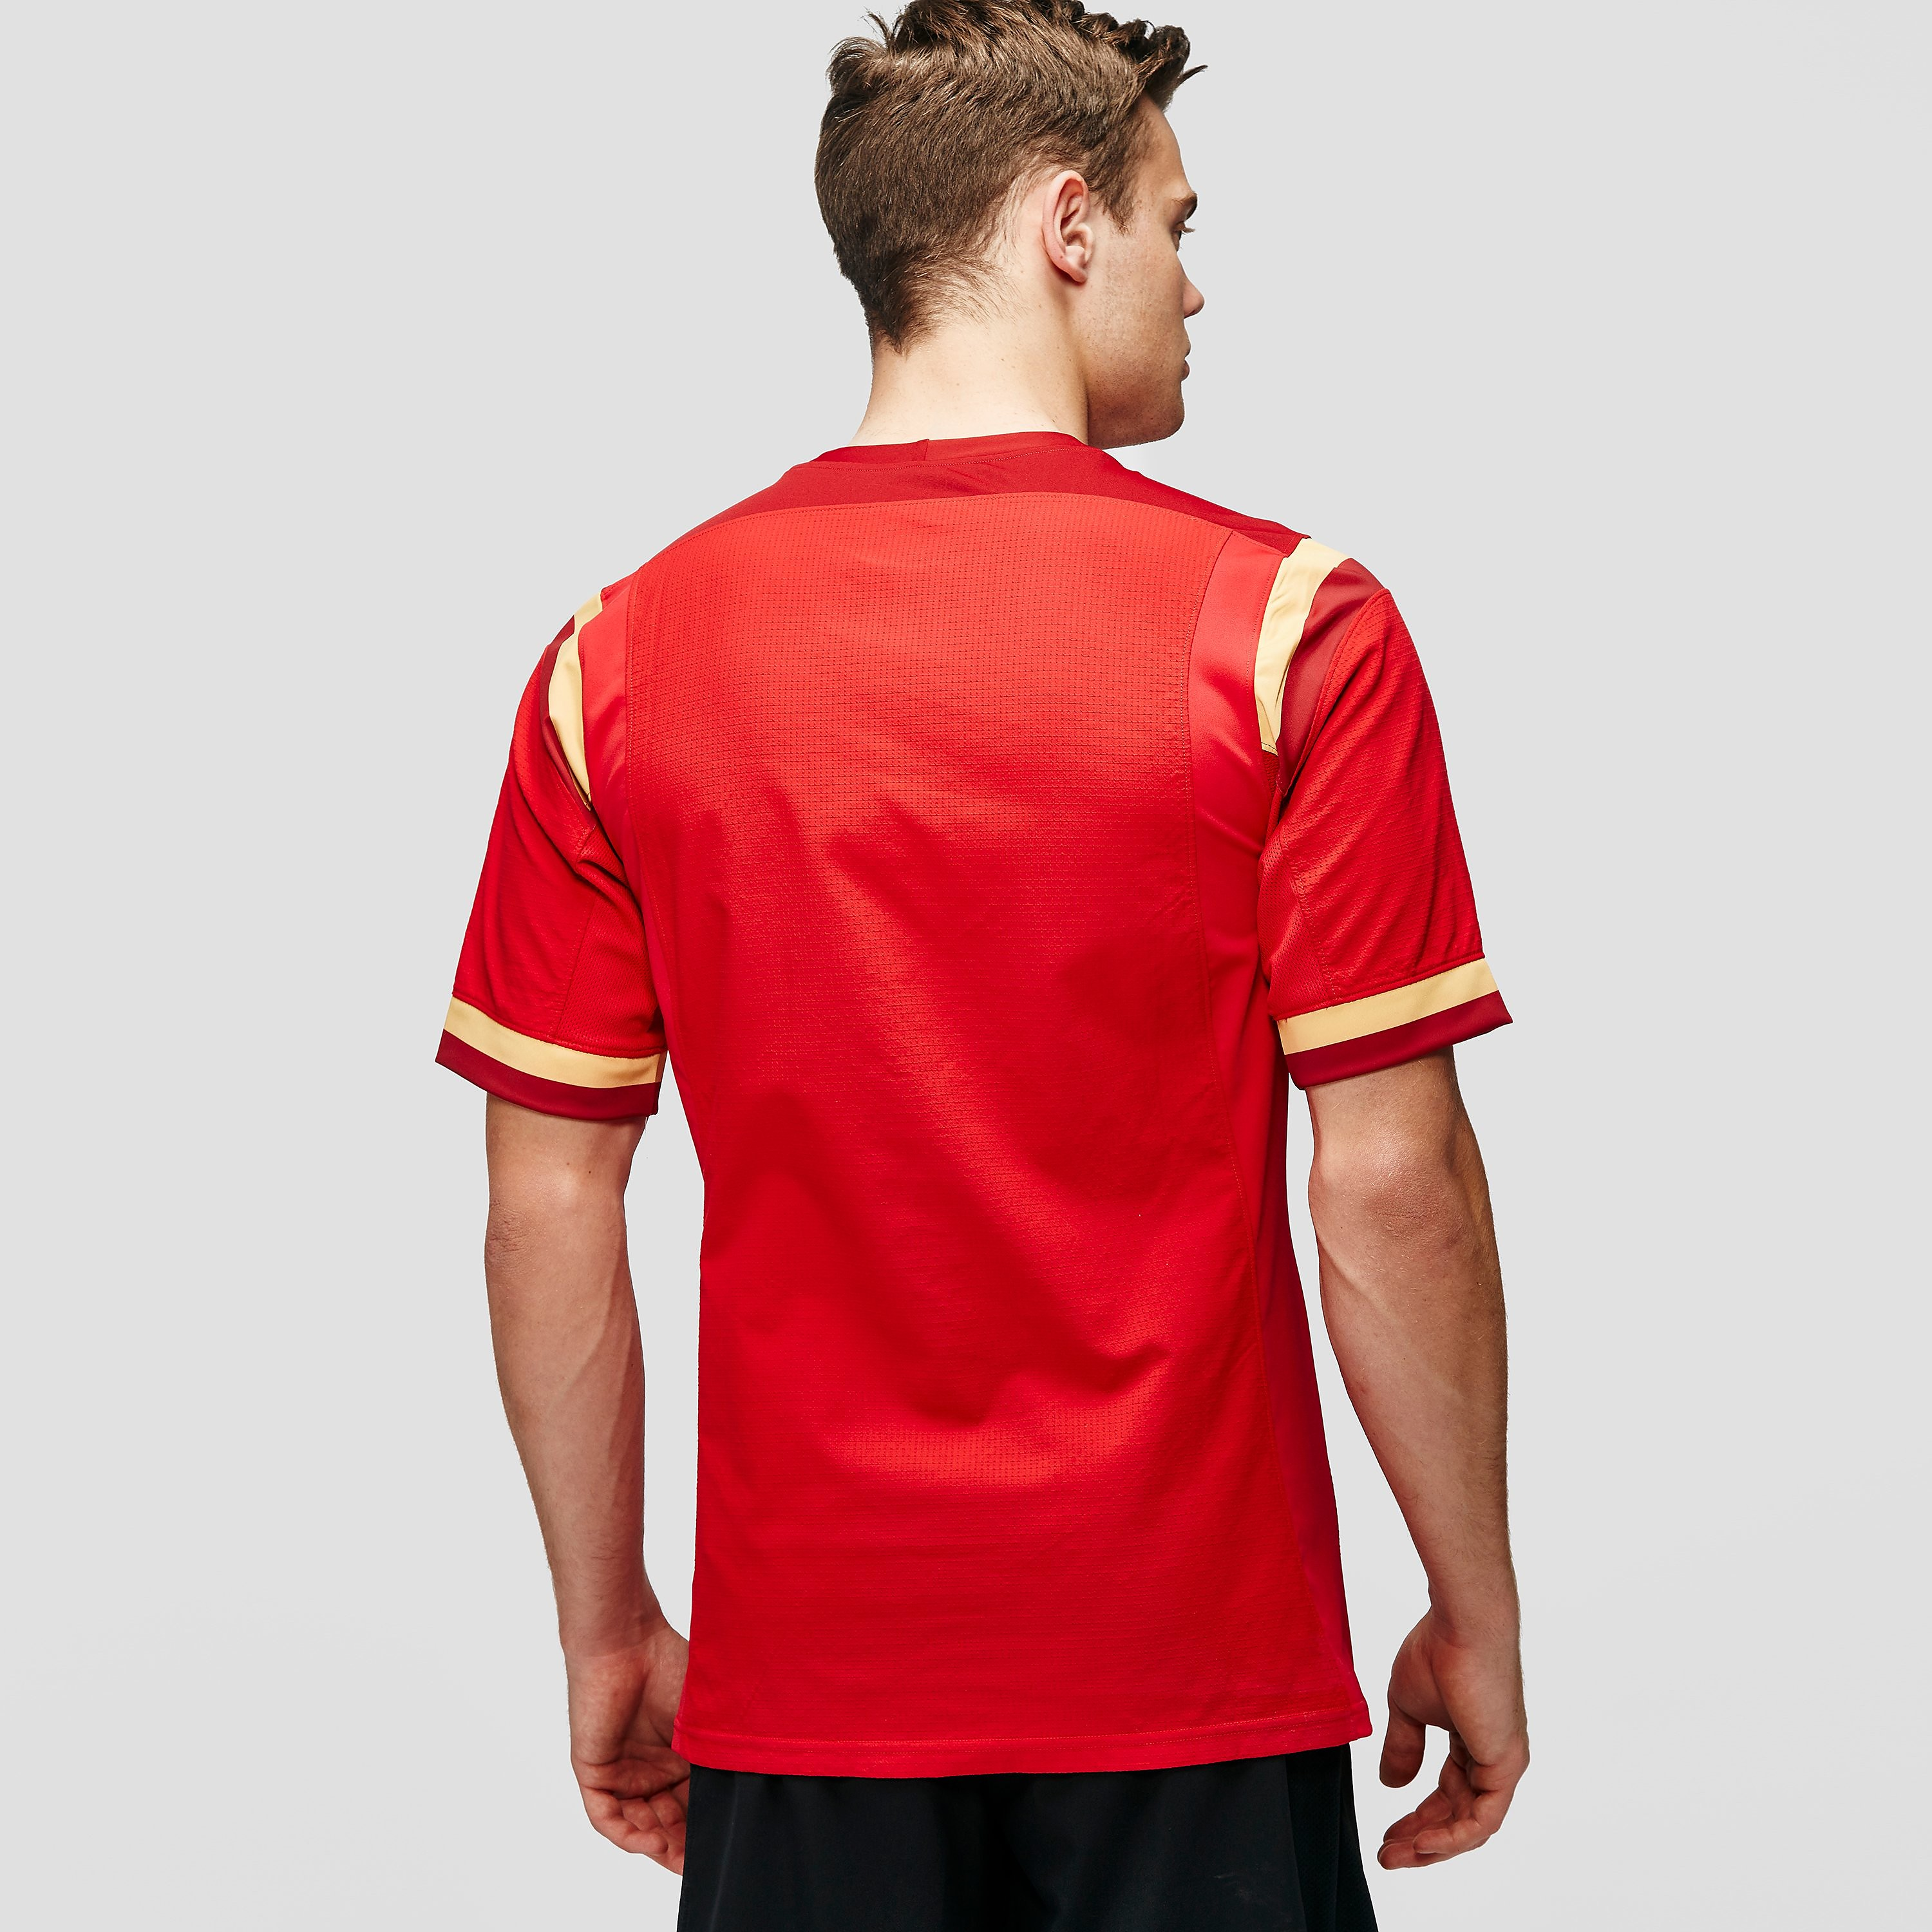 Under Armour WALES Home 2015/16 Gameday Men's Rugby Jersey